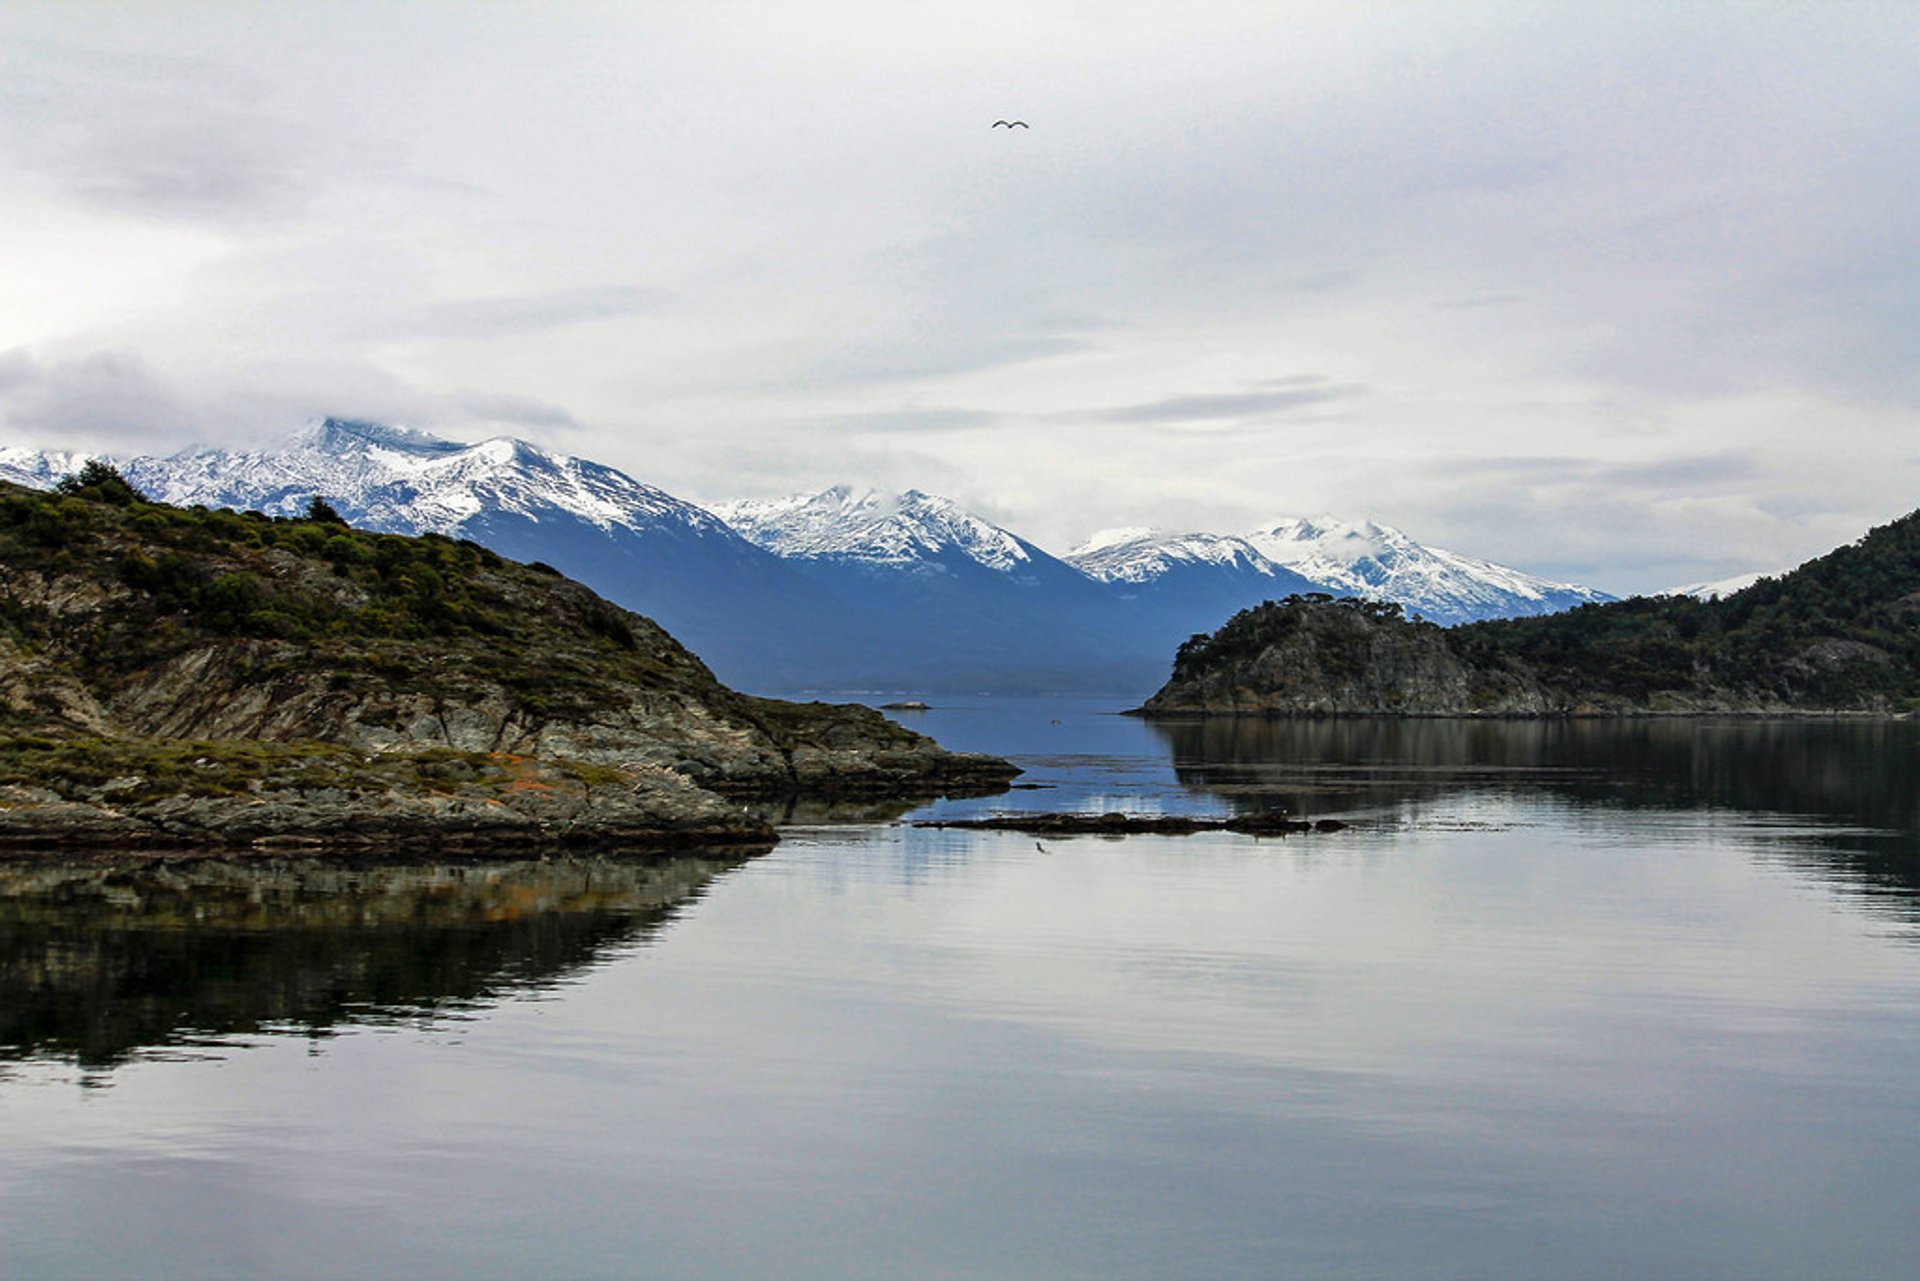 Beagle Channel in Patagonia - Best Time